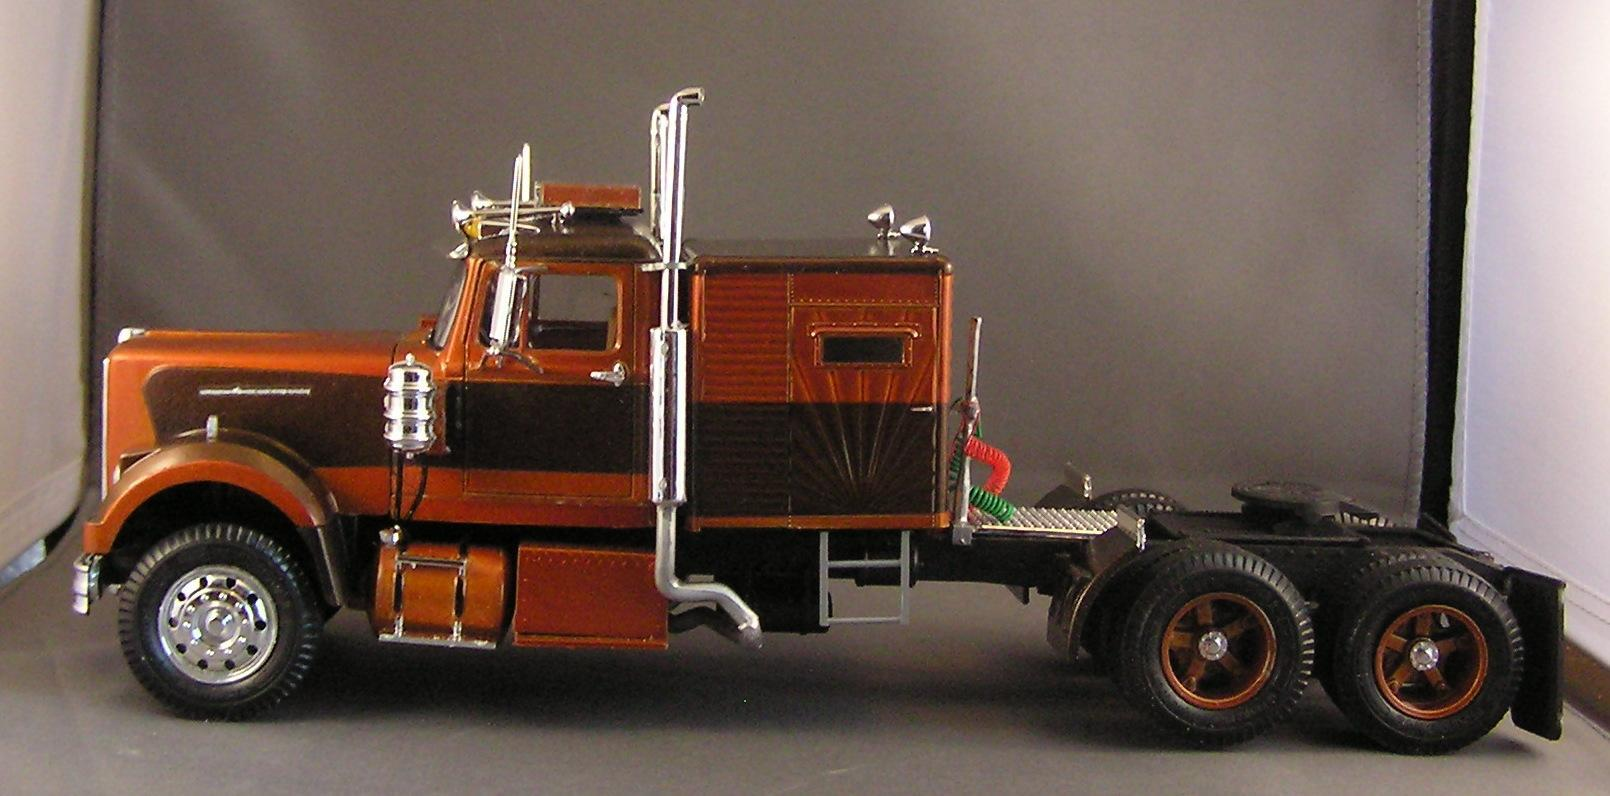 Build A Car From Scratch >> White Western Star - Under Glass: Big Rigs - Model Cars ...